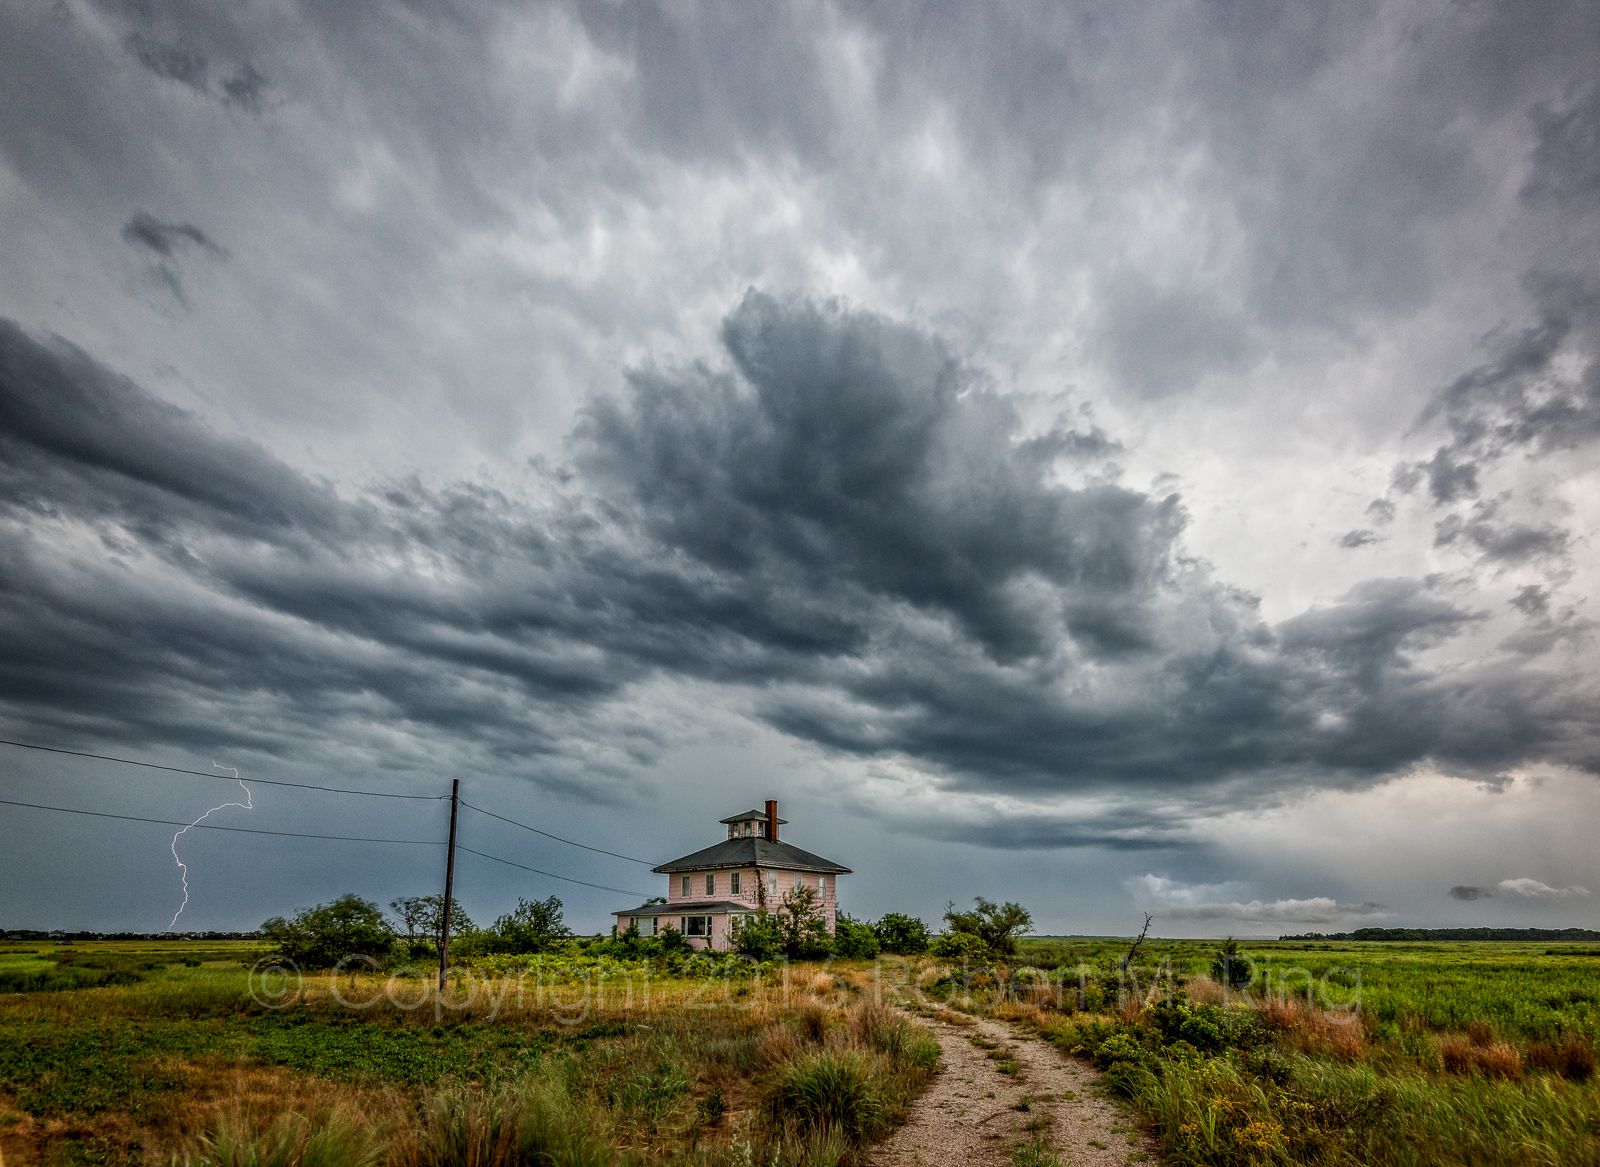 Storms, Pink House, clouds, sky, lightning, cloud, New England